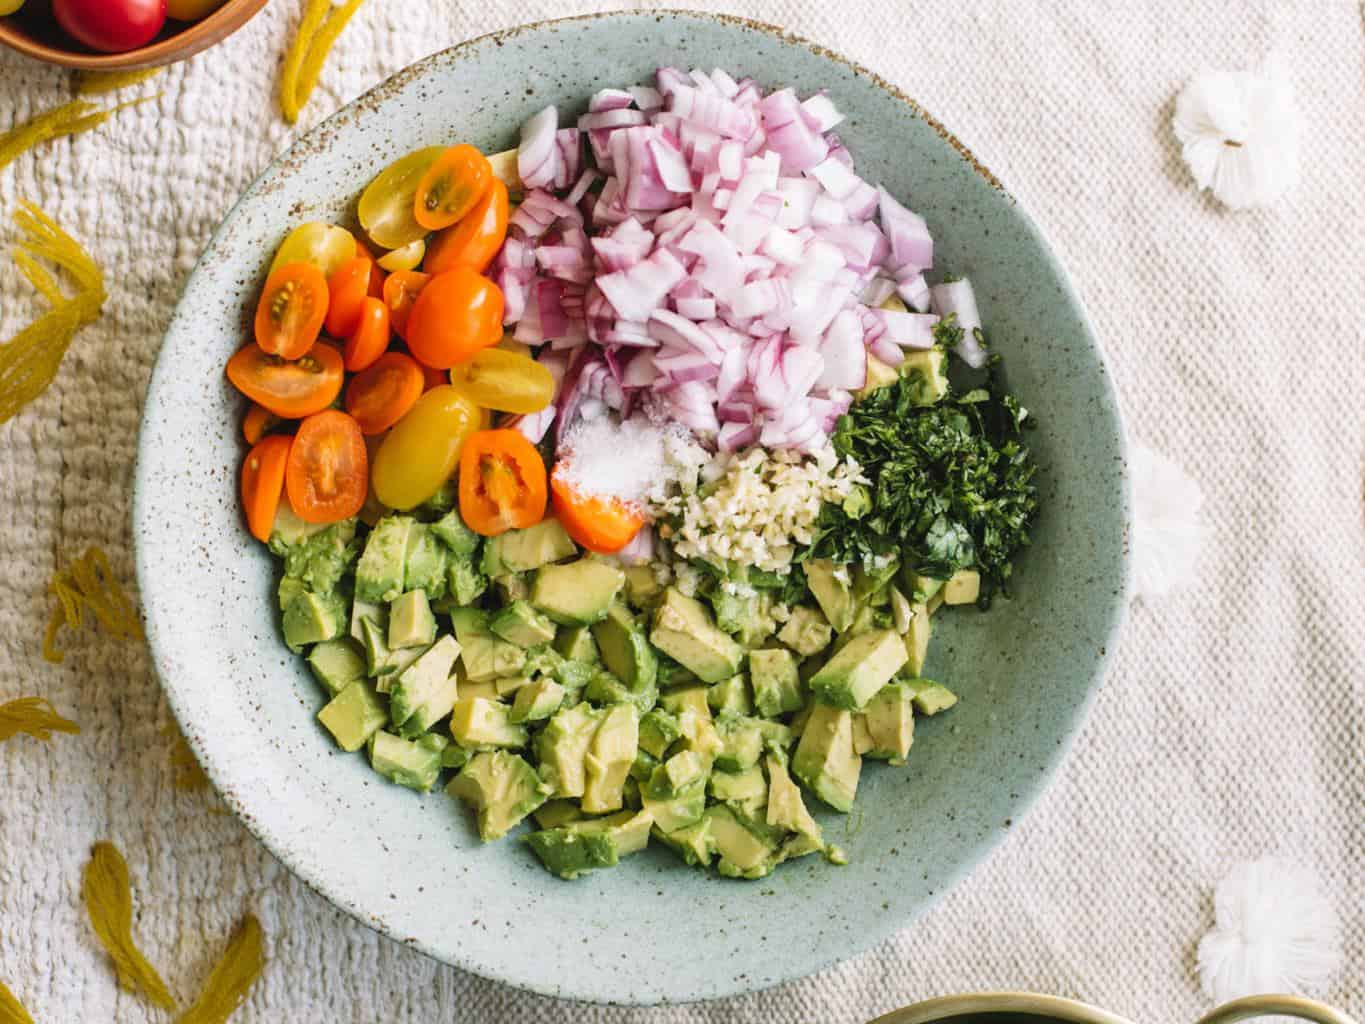 Blue bowl filled with avocado, cilantro, garlic, red onions, and cherry heirloom tomatoes.